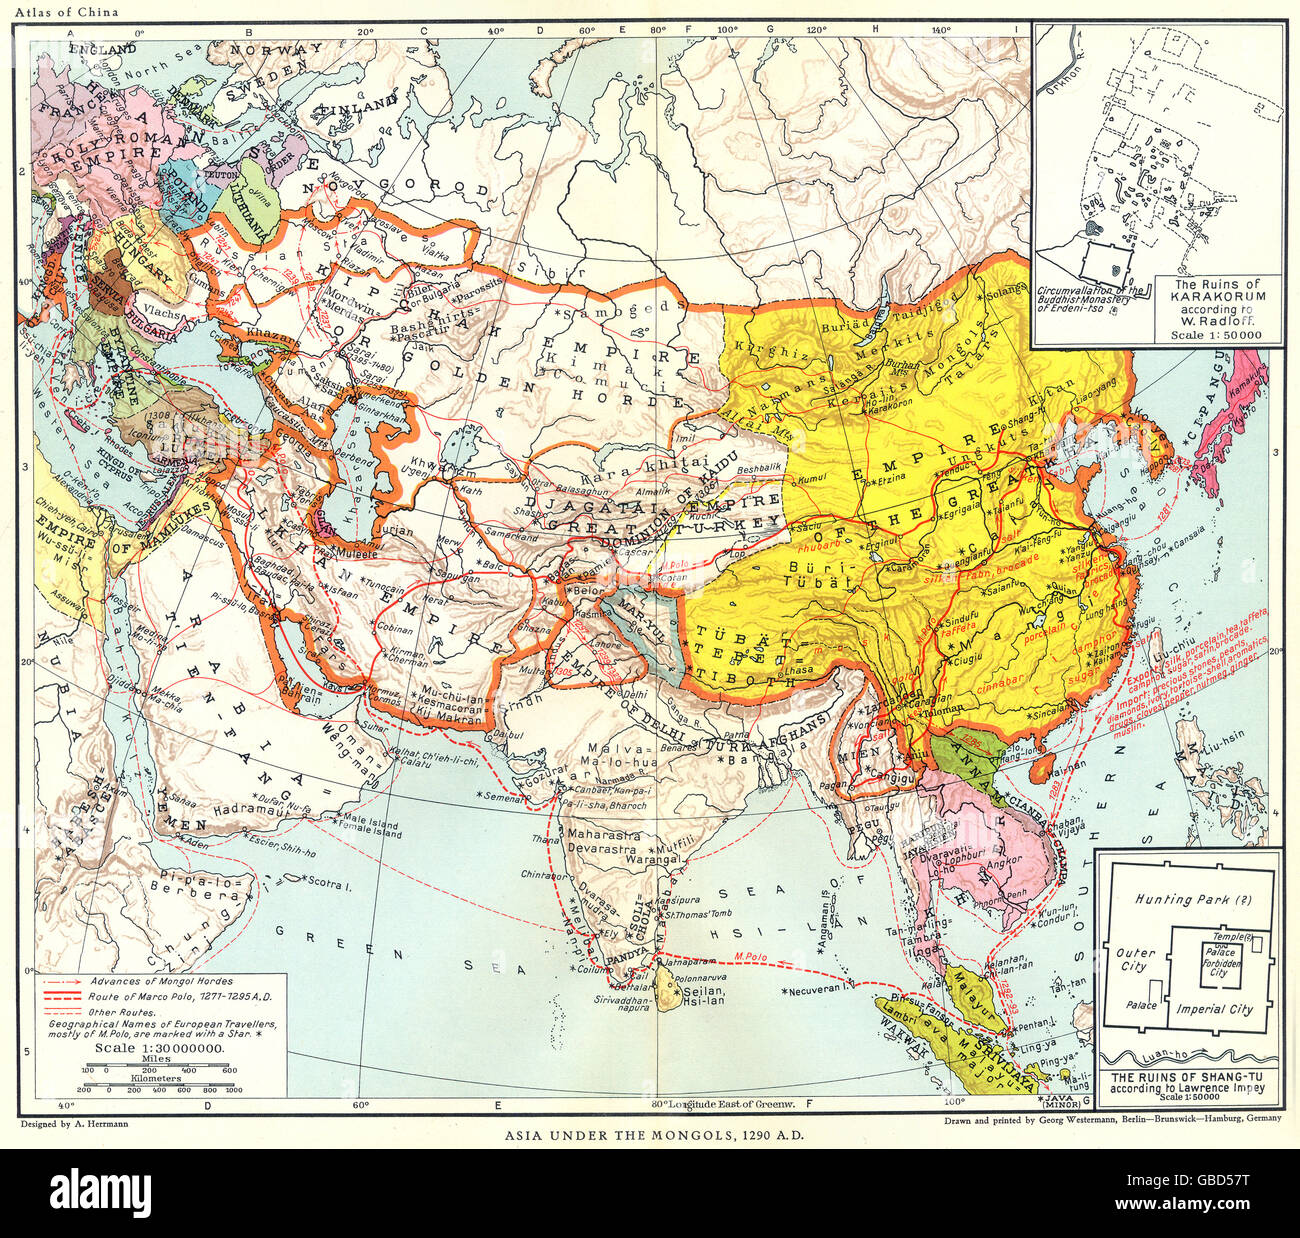 Karakorum On Map on yuan dynasty on map, vienna on map, khotan on map, delhi on map, kiev on map, timbuktu on map, la venta on map, malacca on map, paris on map, moscow on map, kunlun mountains on map, golden horde on map, tiwanaku on map, sigiriya on map, l'anse aux meadows on map, tanis on map, cahuachi on map, marco polo on map, seville on map, samarkand on map,